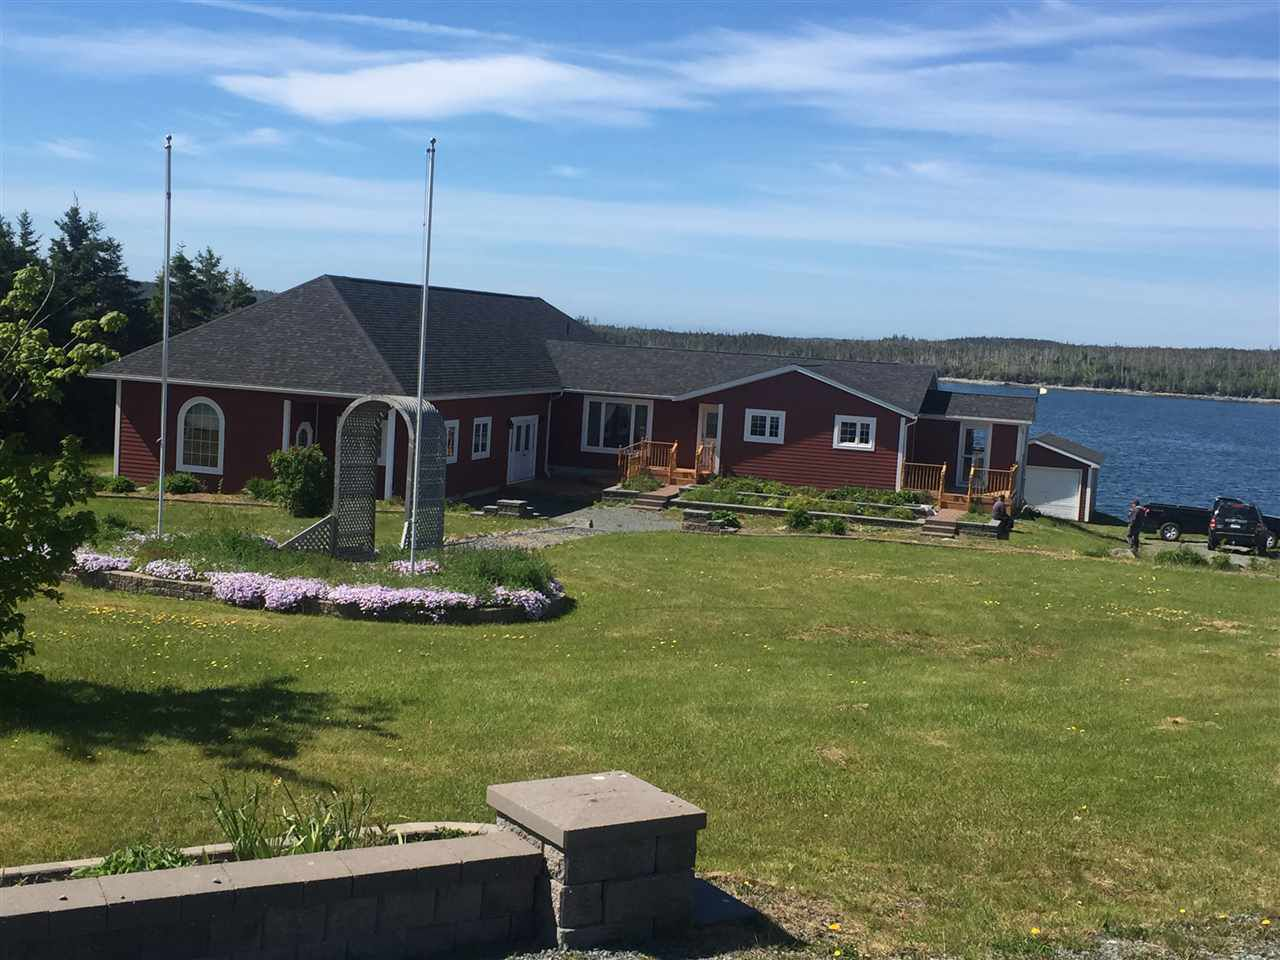 Main Photo: 660 Little Liscomb Road in Little Liscomb: 303-Guysborough County Residential for sale (Highland Region)  : MLS®# 201906958